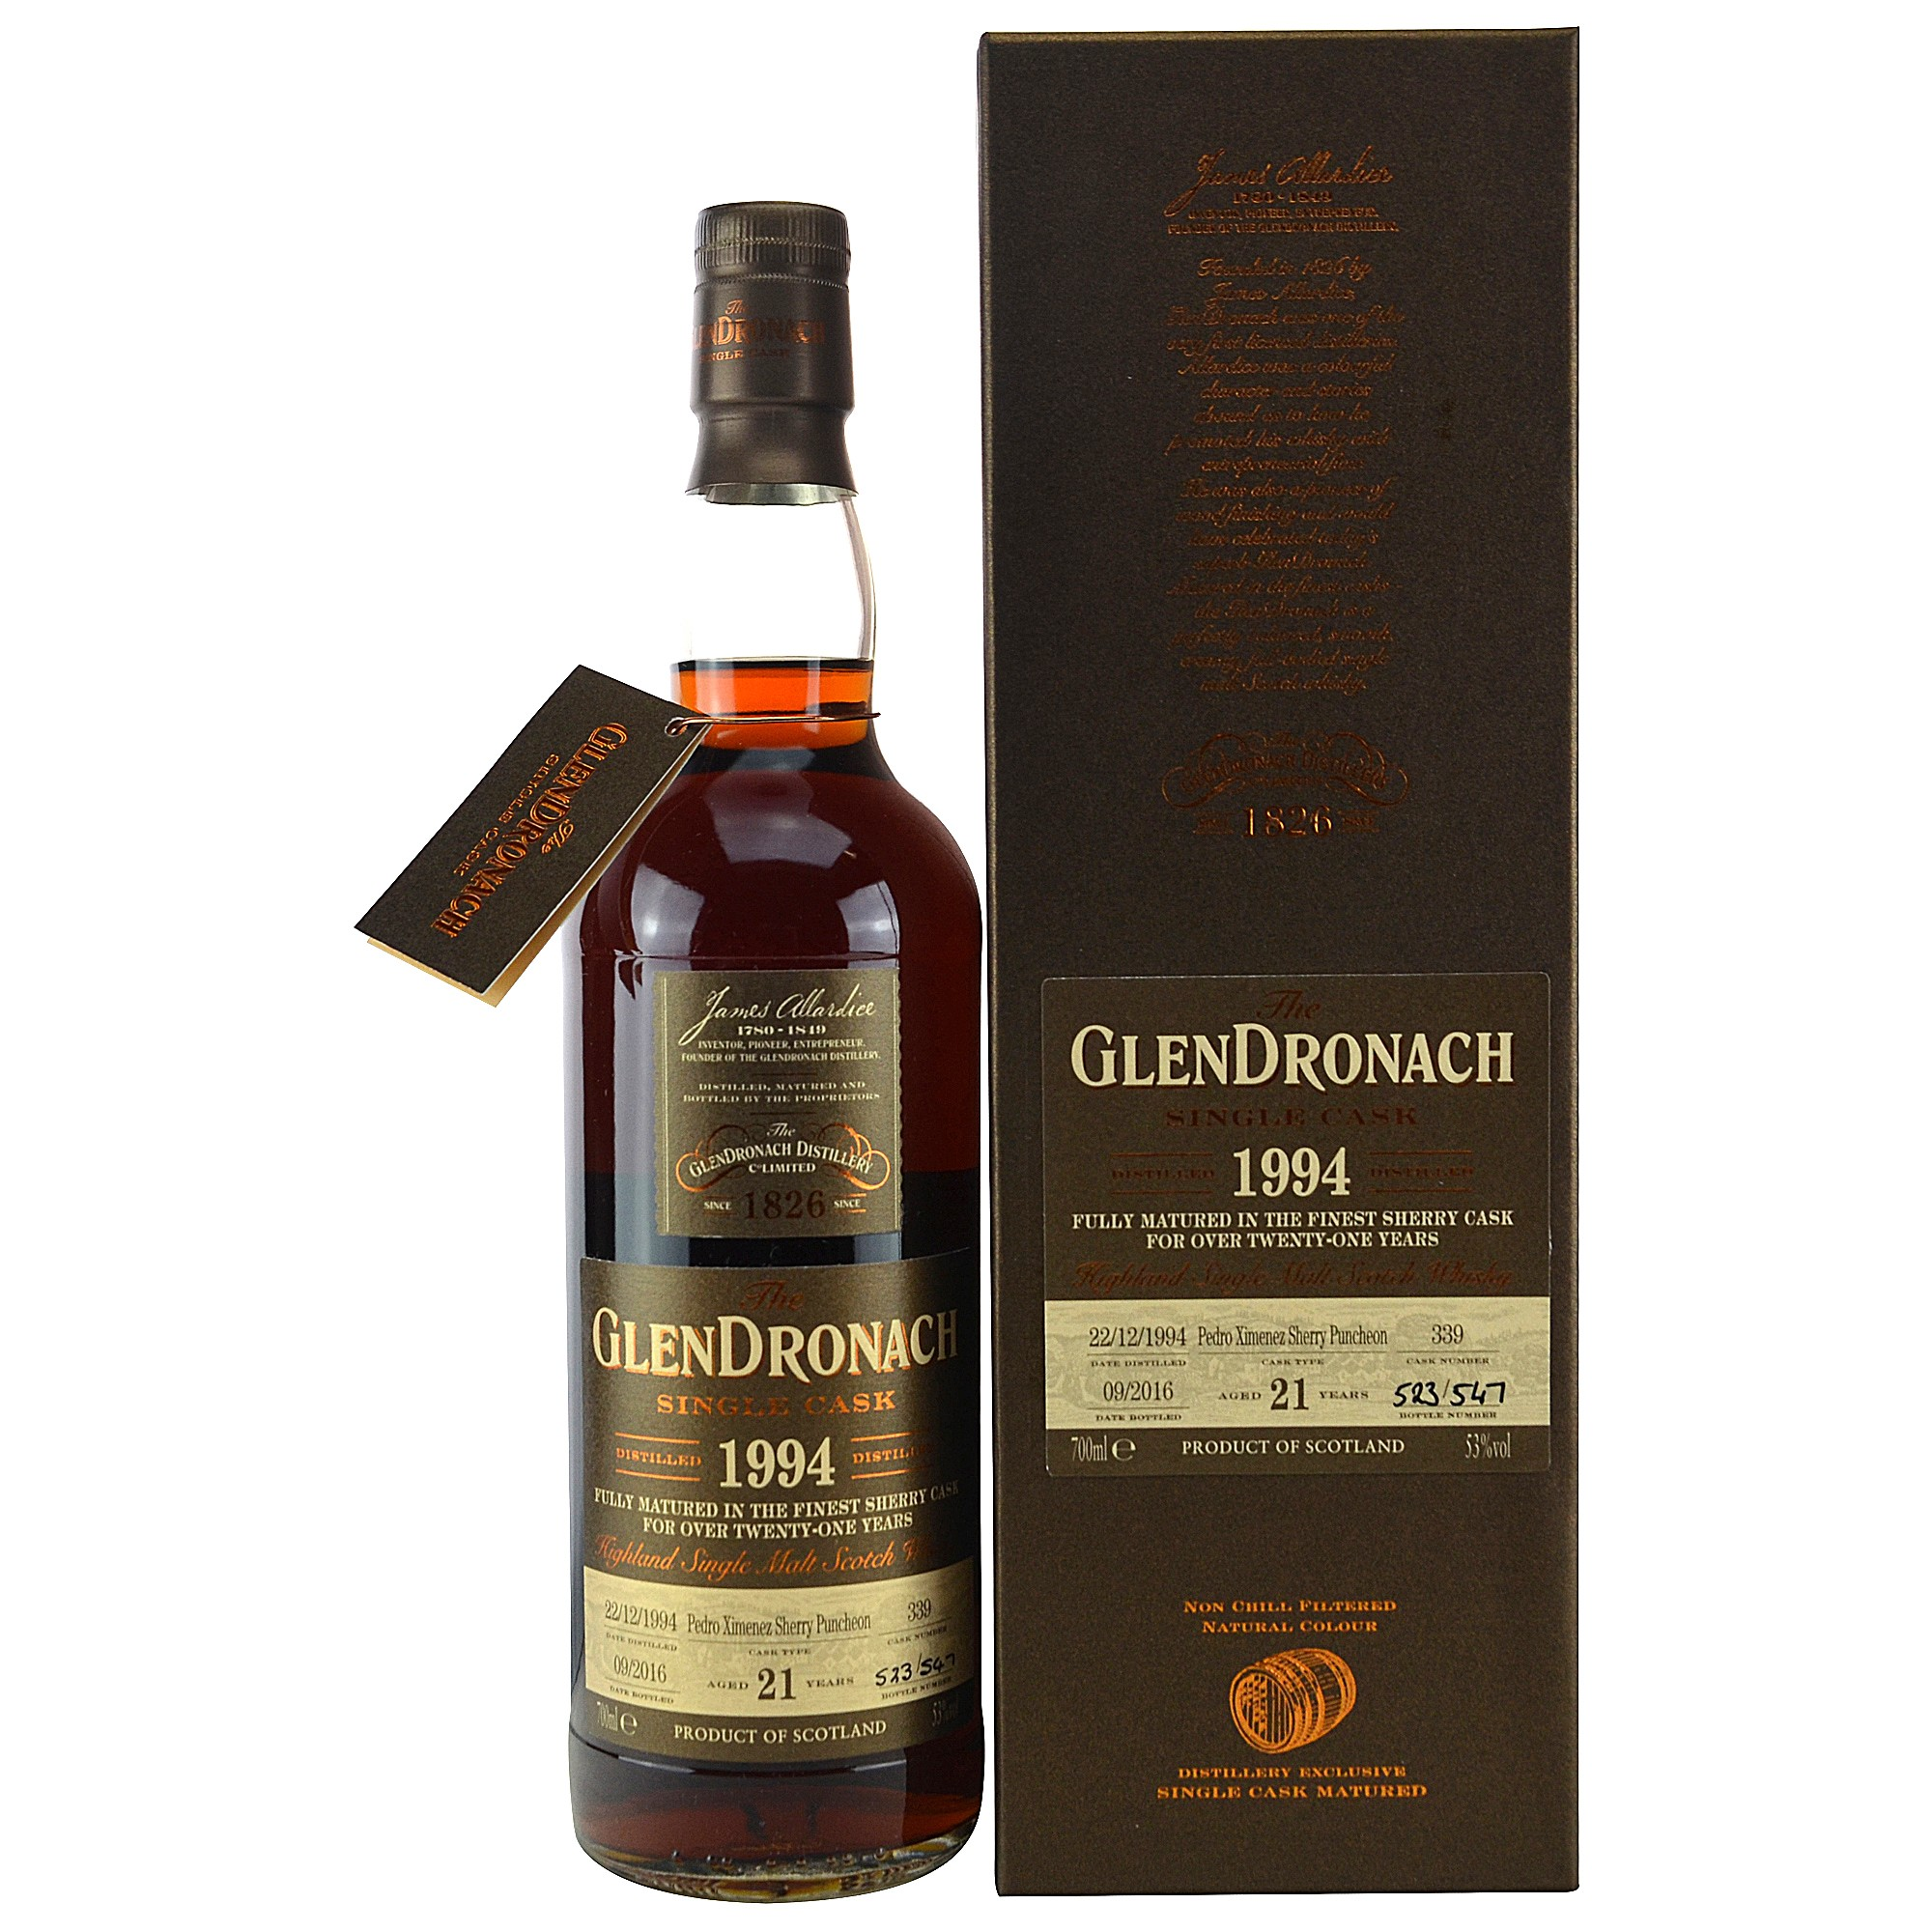 Glendronach 1994/2016 Single Cask No.339 Pedro Ximenez Sherry Puncheon Batch #14